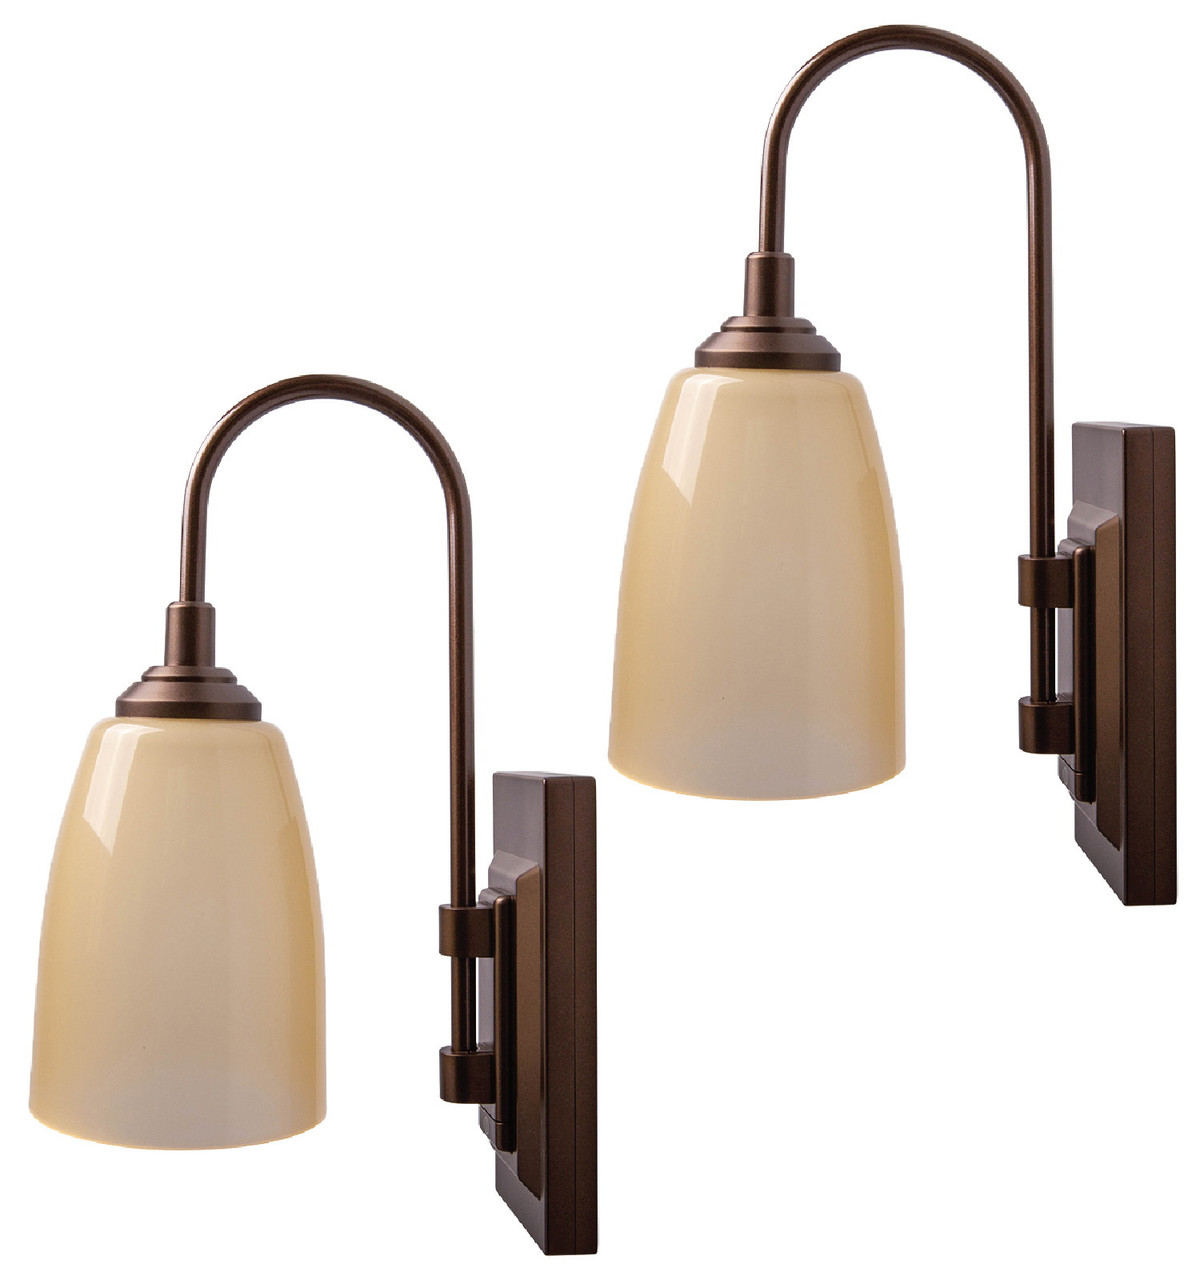 Westek Battery Operated Wall Sconces 2 Pack Easy Wireless Installation 4 Hour Auto Shut Off 2 Brightness Levels 100 Lumen Battery Operated Wall Light Firefly Buys